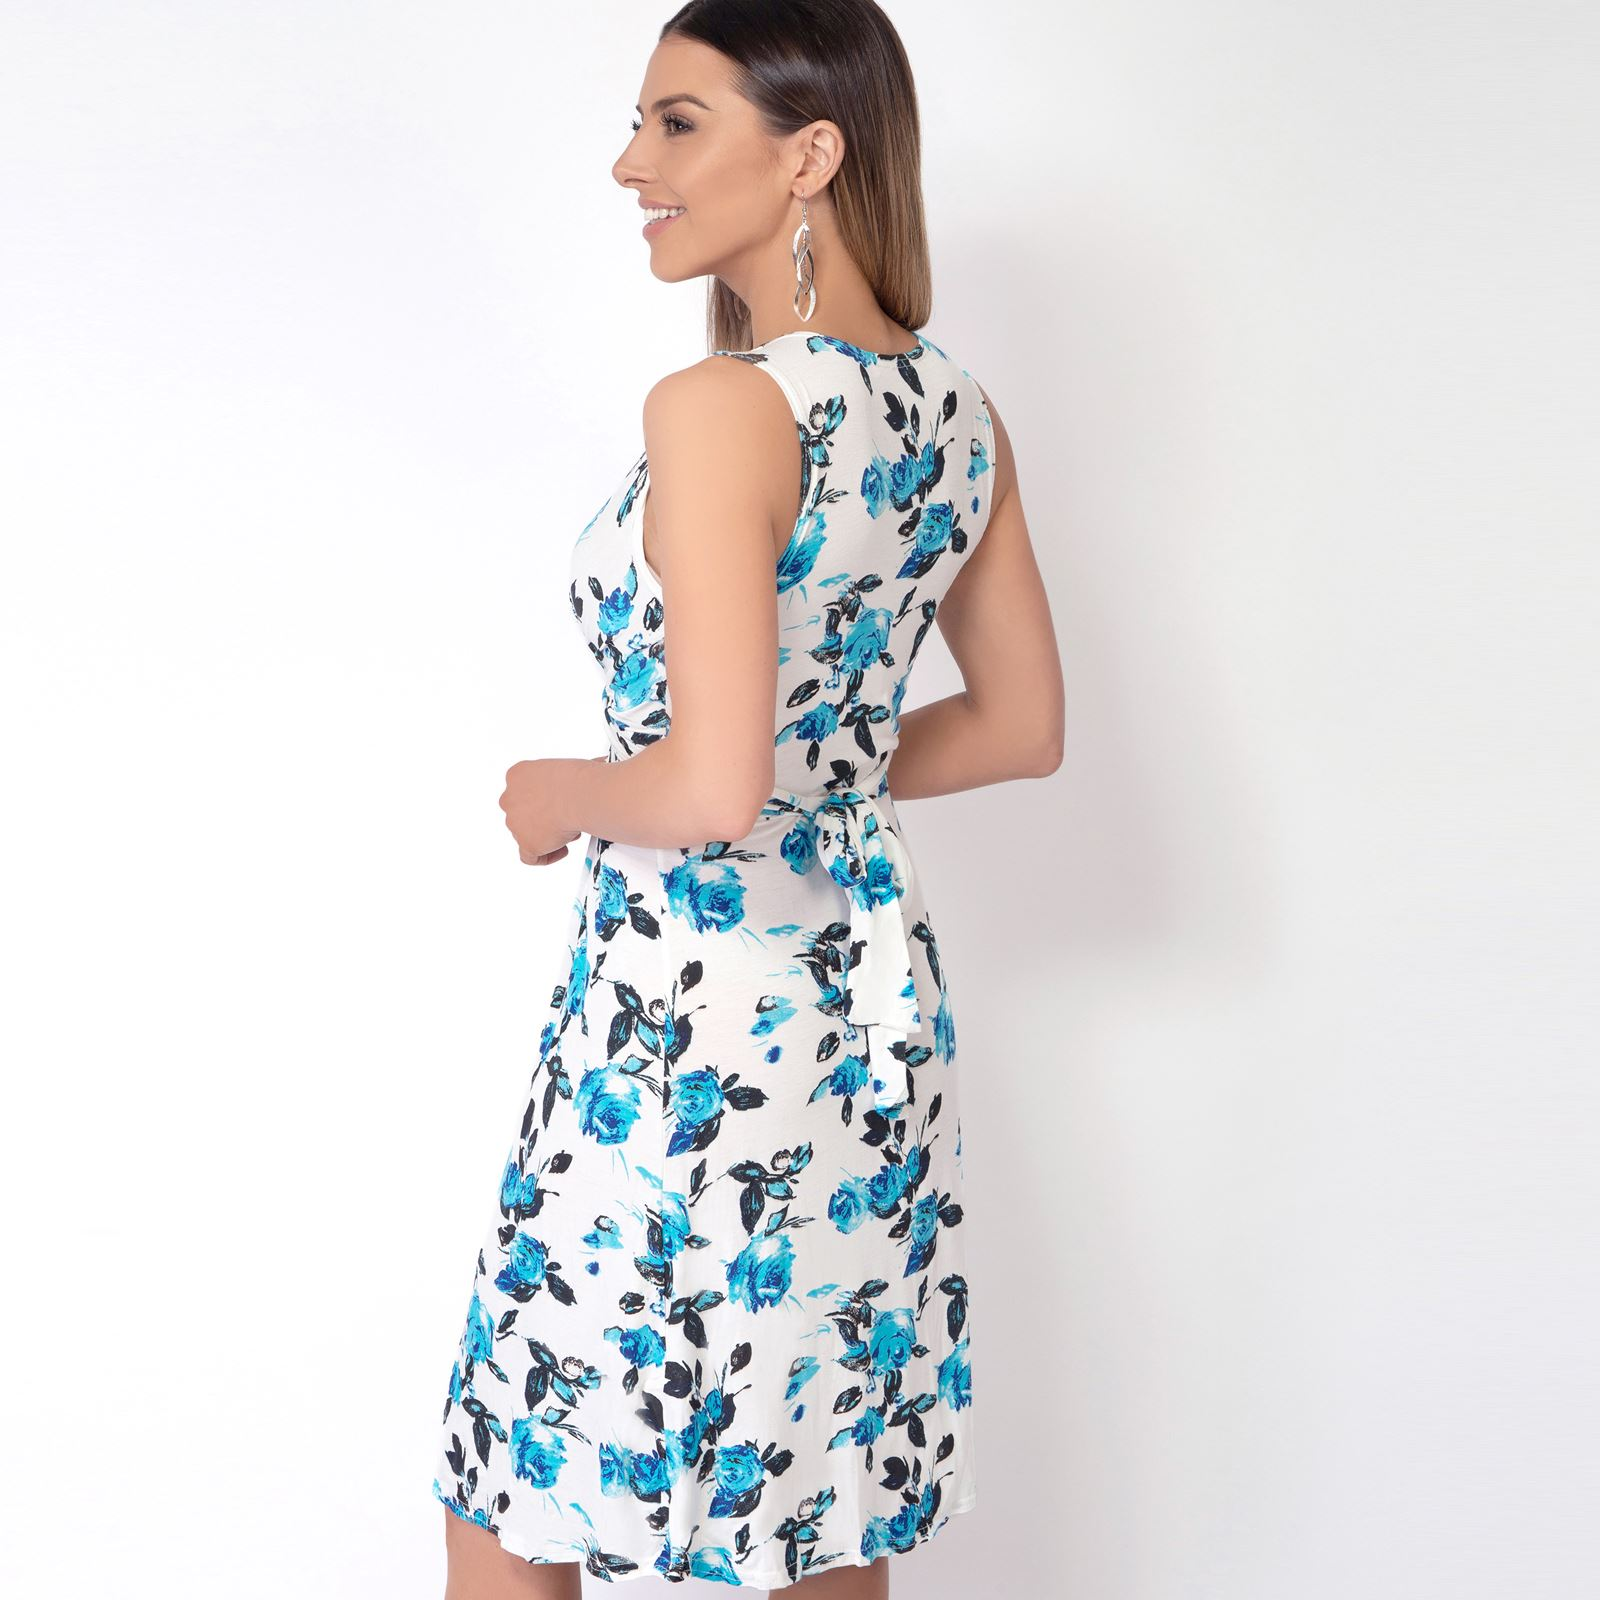 Womens-Floral-Print-Dress-Midi-Drape-Ruched-Front-Knot-Tie-Belt-Casual-Party thumbnail 13